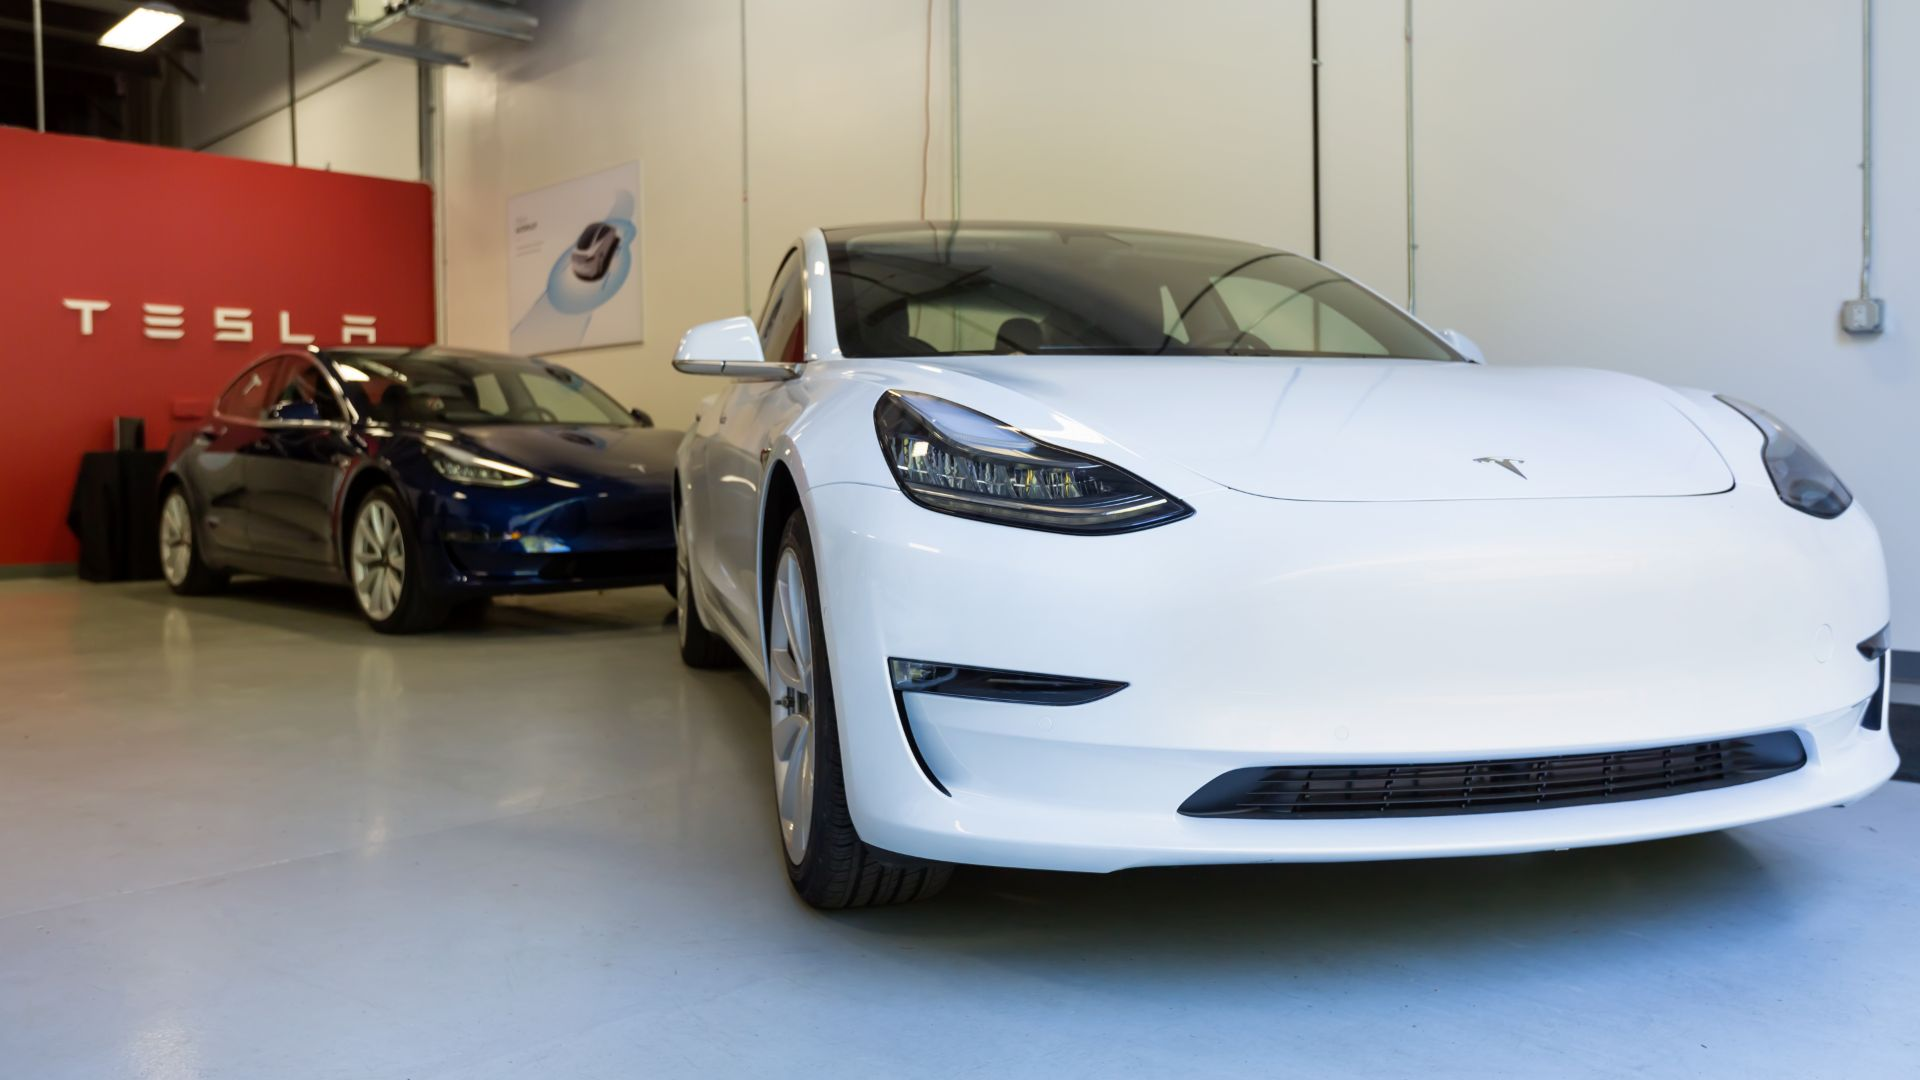 How far do electric cars really go on a charge